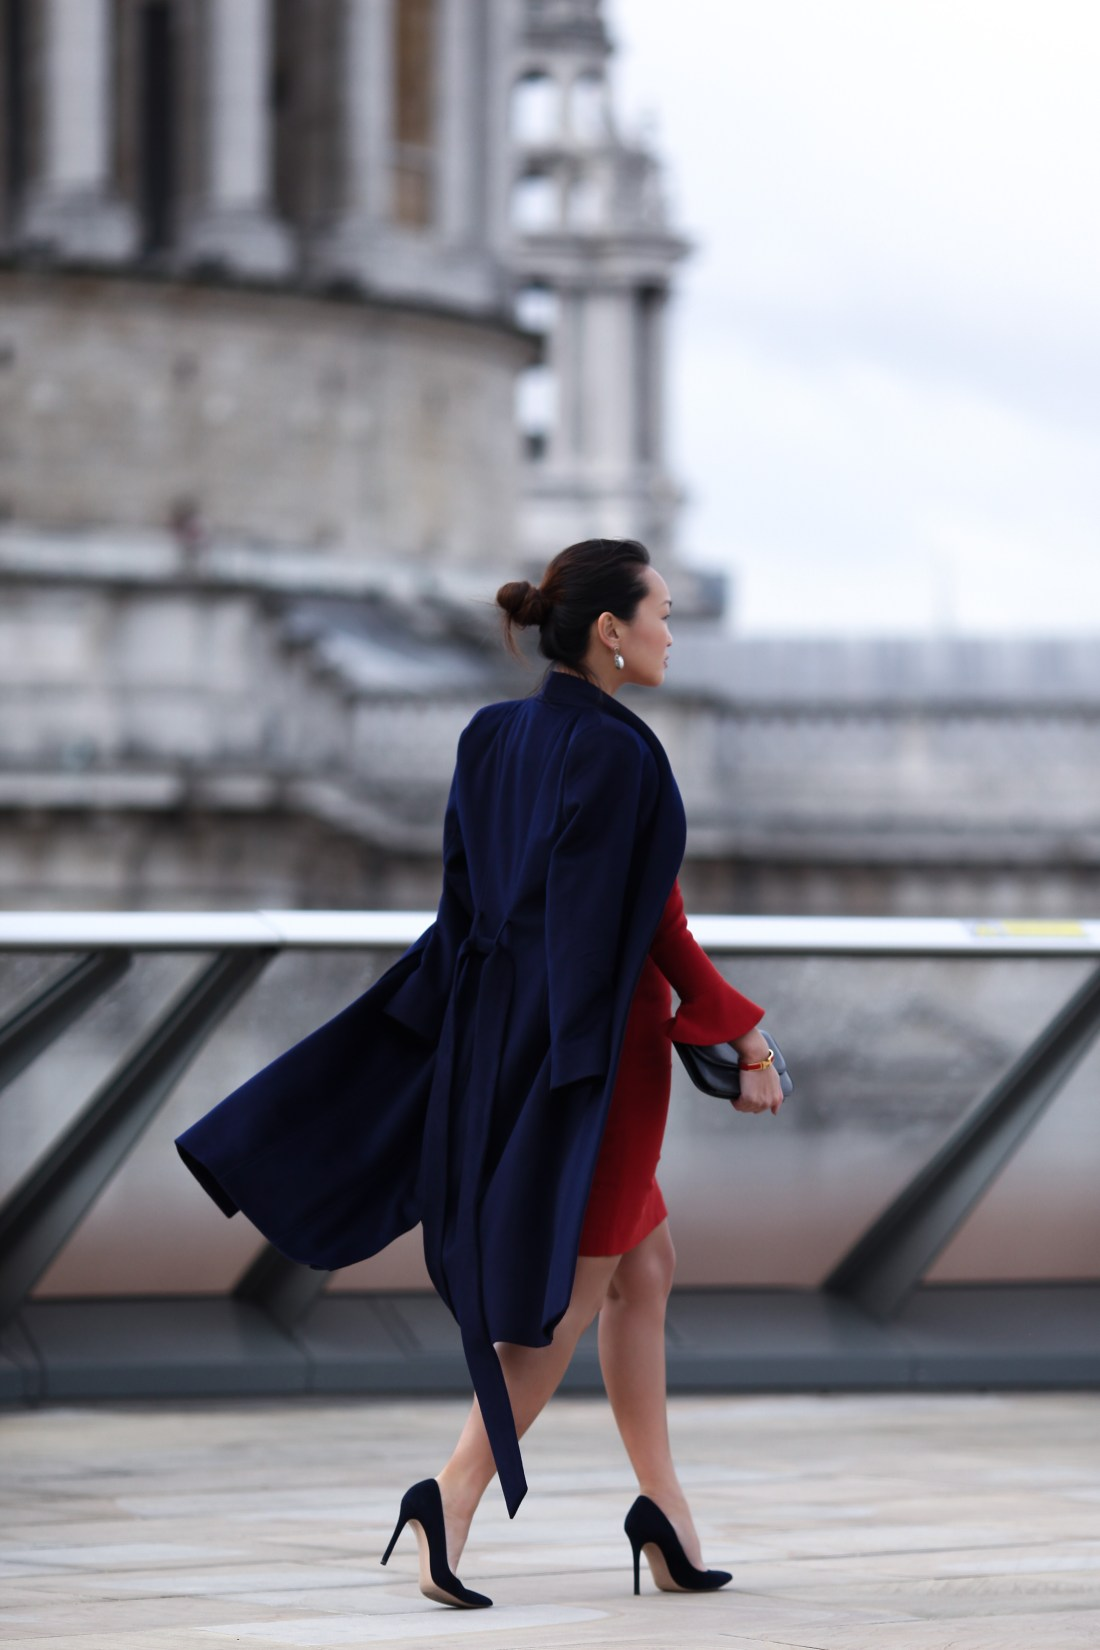 Mariko Kuo in the Carnaby dress and Claremont Coat by the Fold London